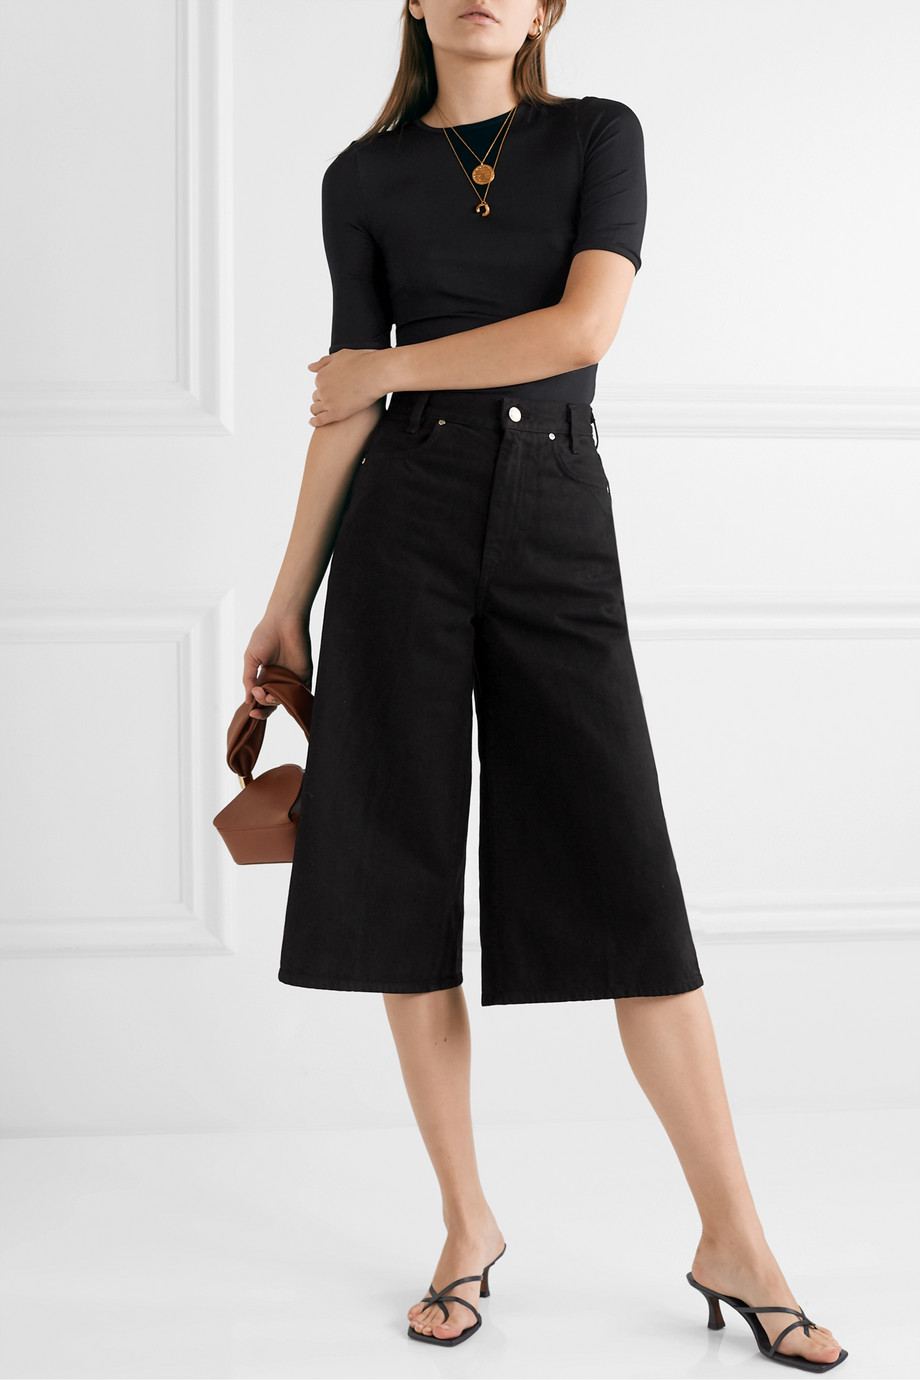 GOLDSIGN + NET SUSTAIN denim culottes